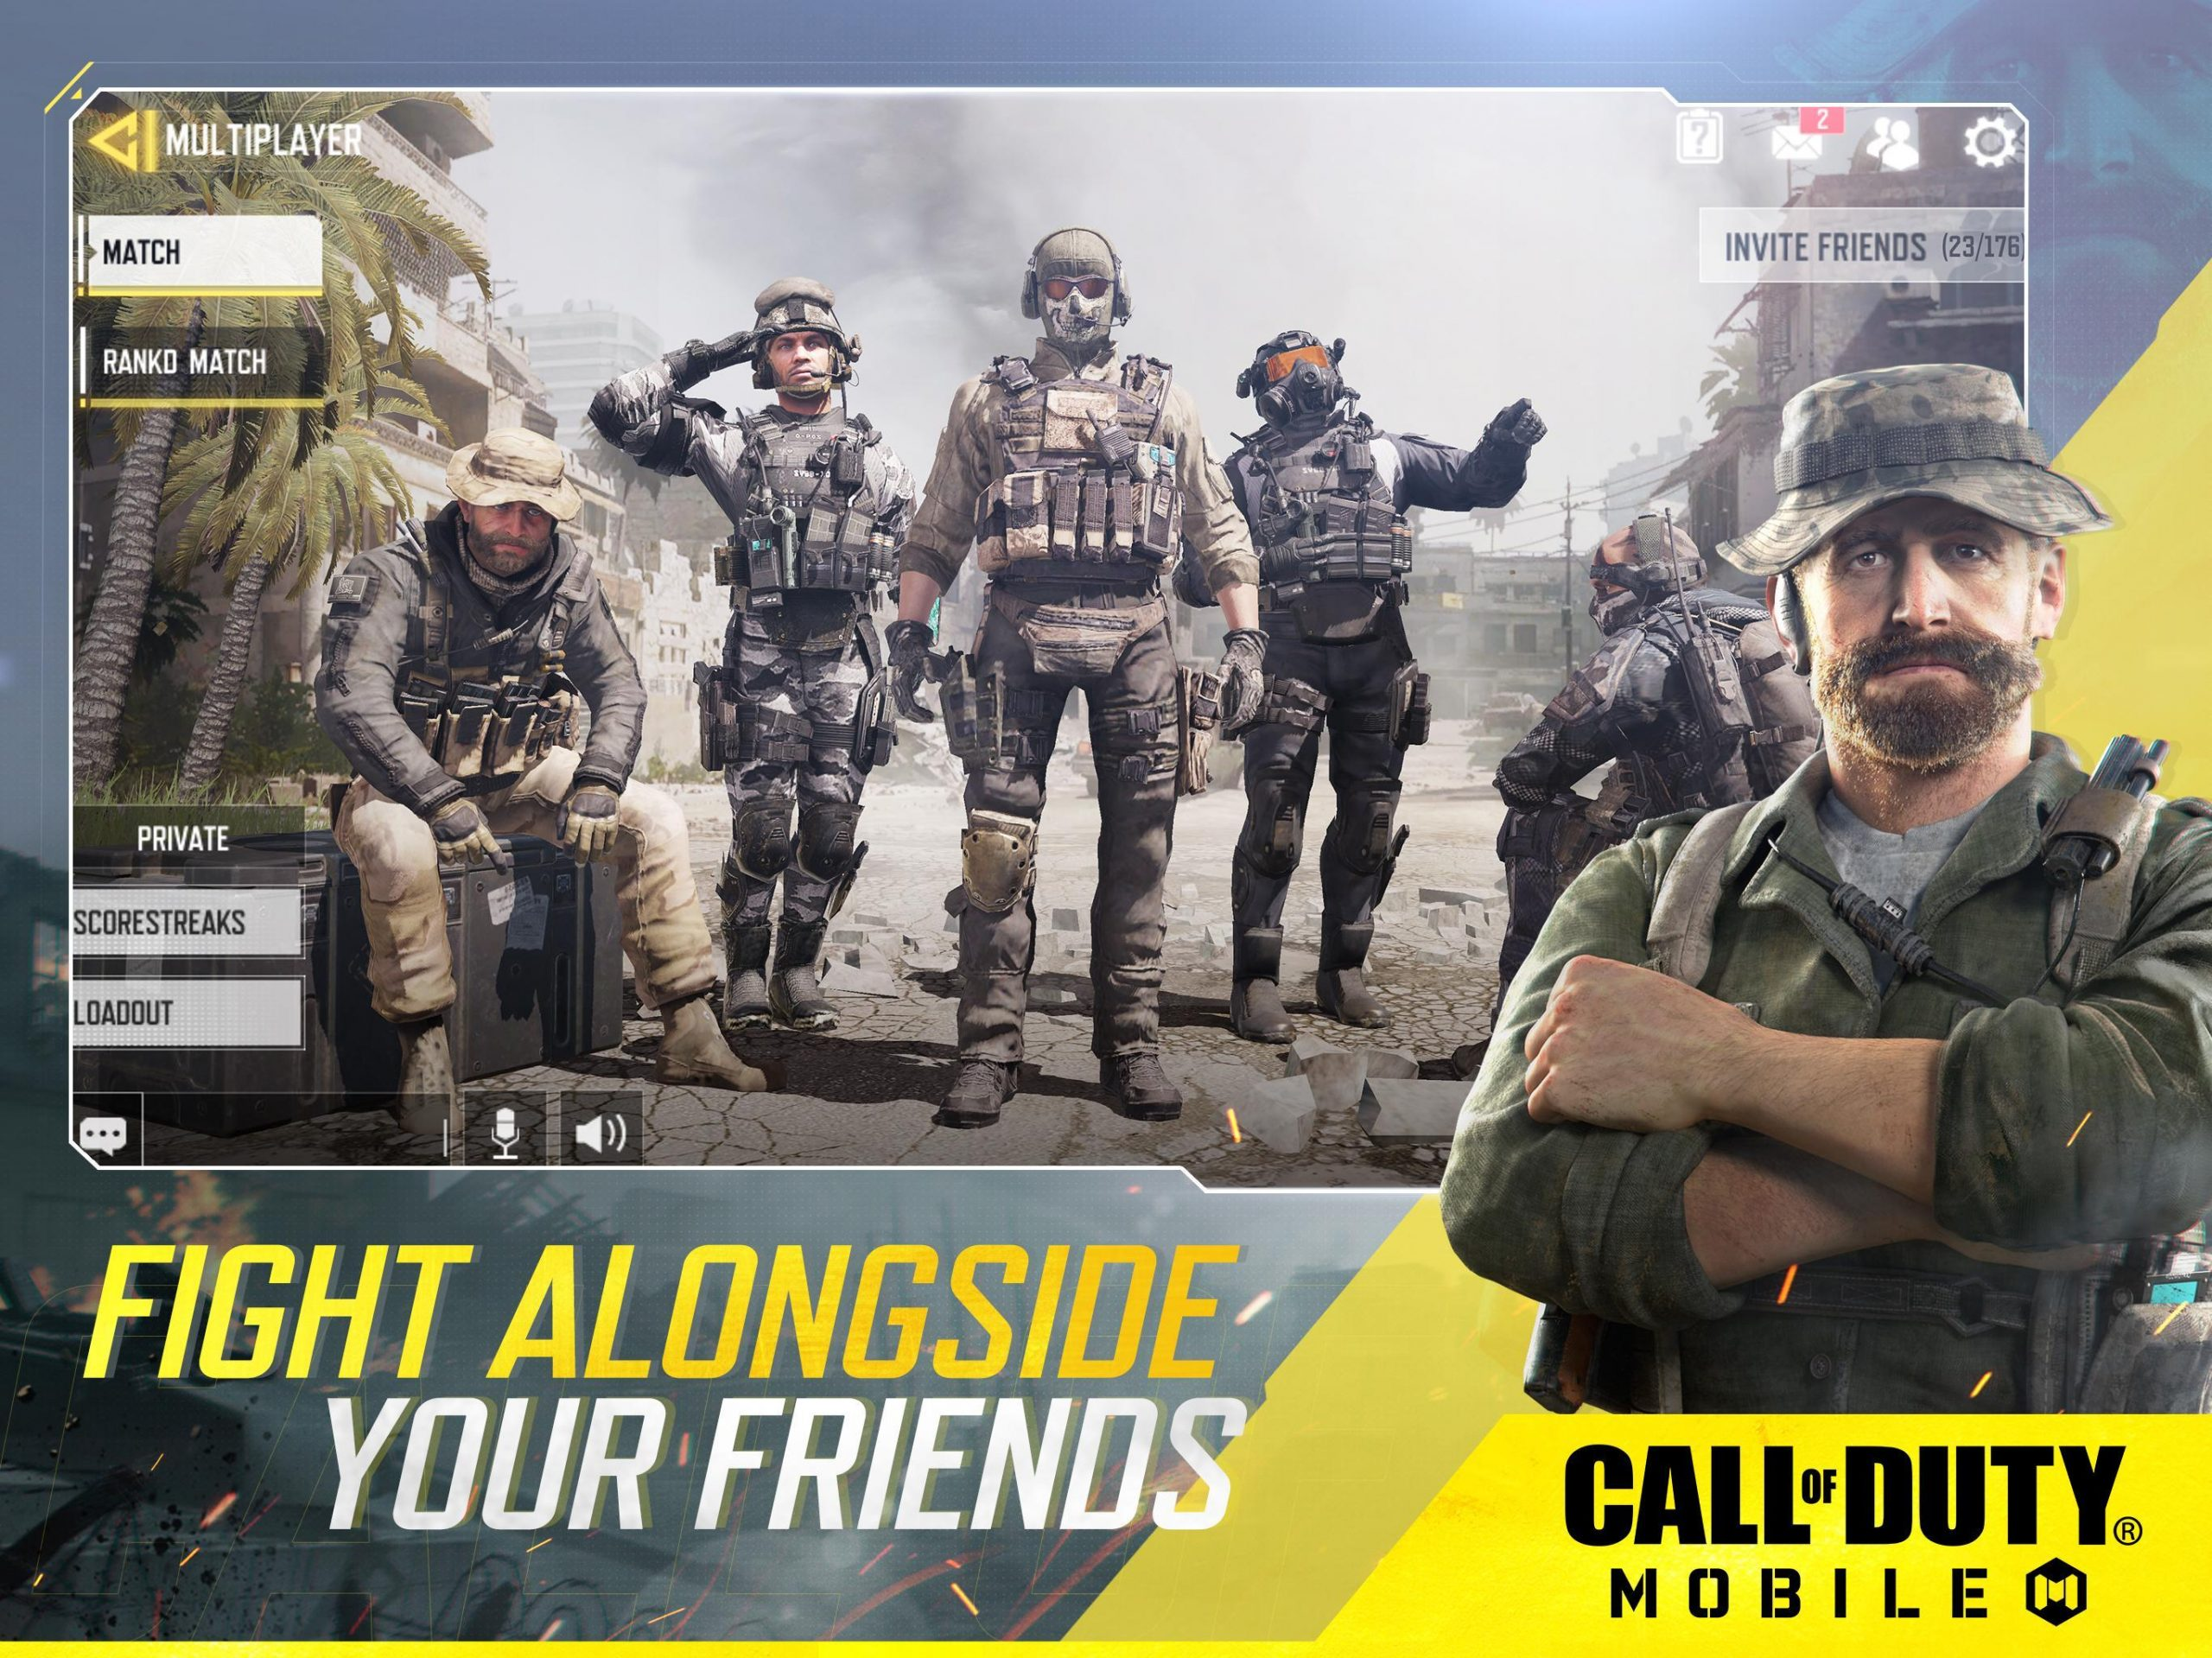 Call of Duty Mobile MOD APK v1.0.22 (Unlimited Money, Aimbot)